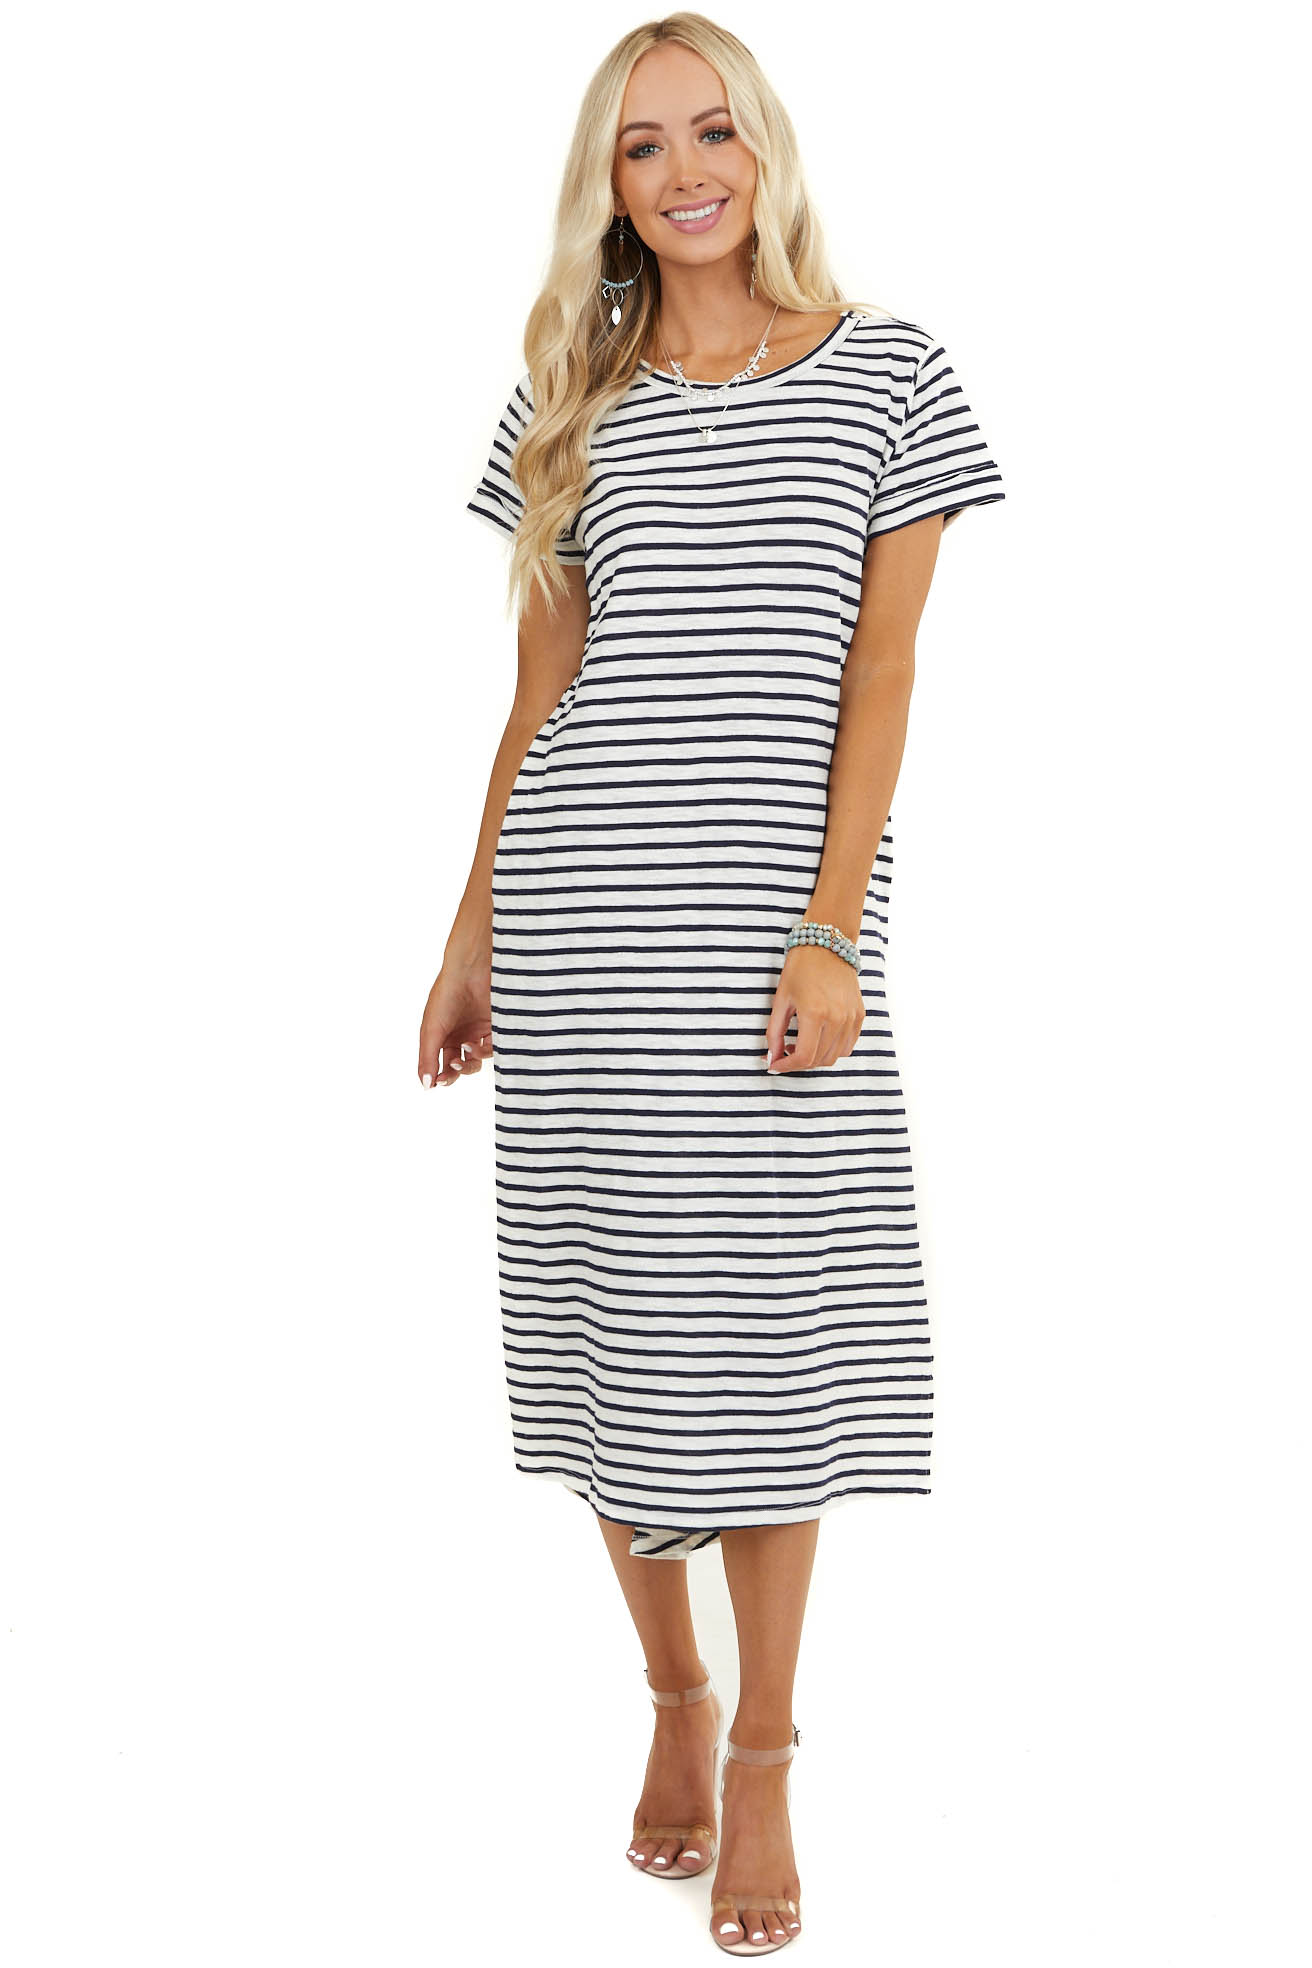 Off White and Navy Striped Dress with Side Pocket Details